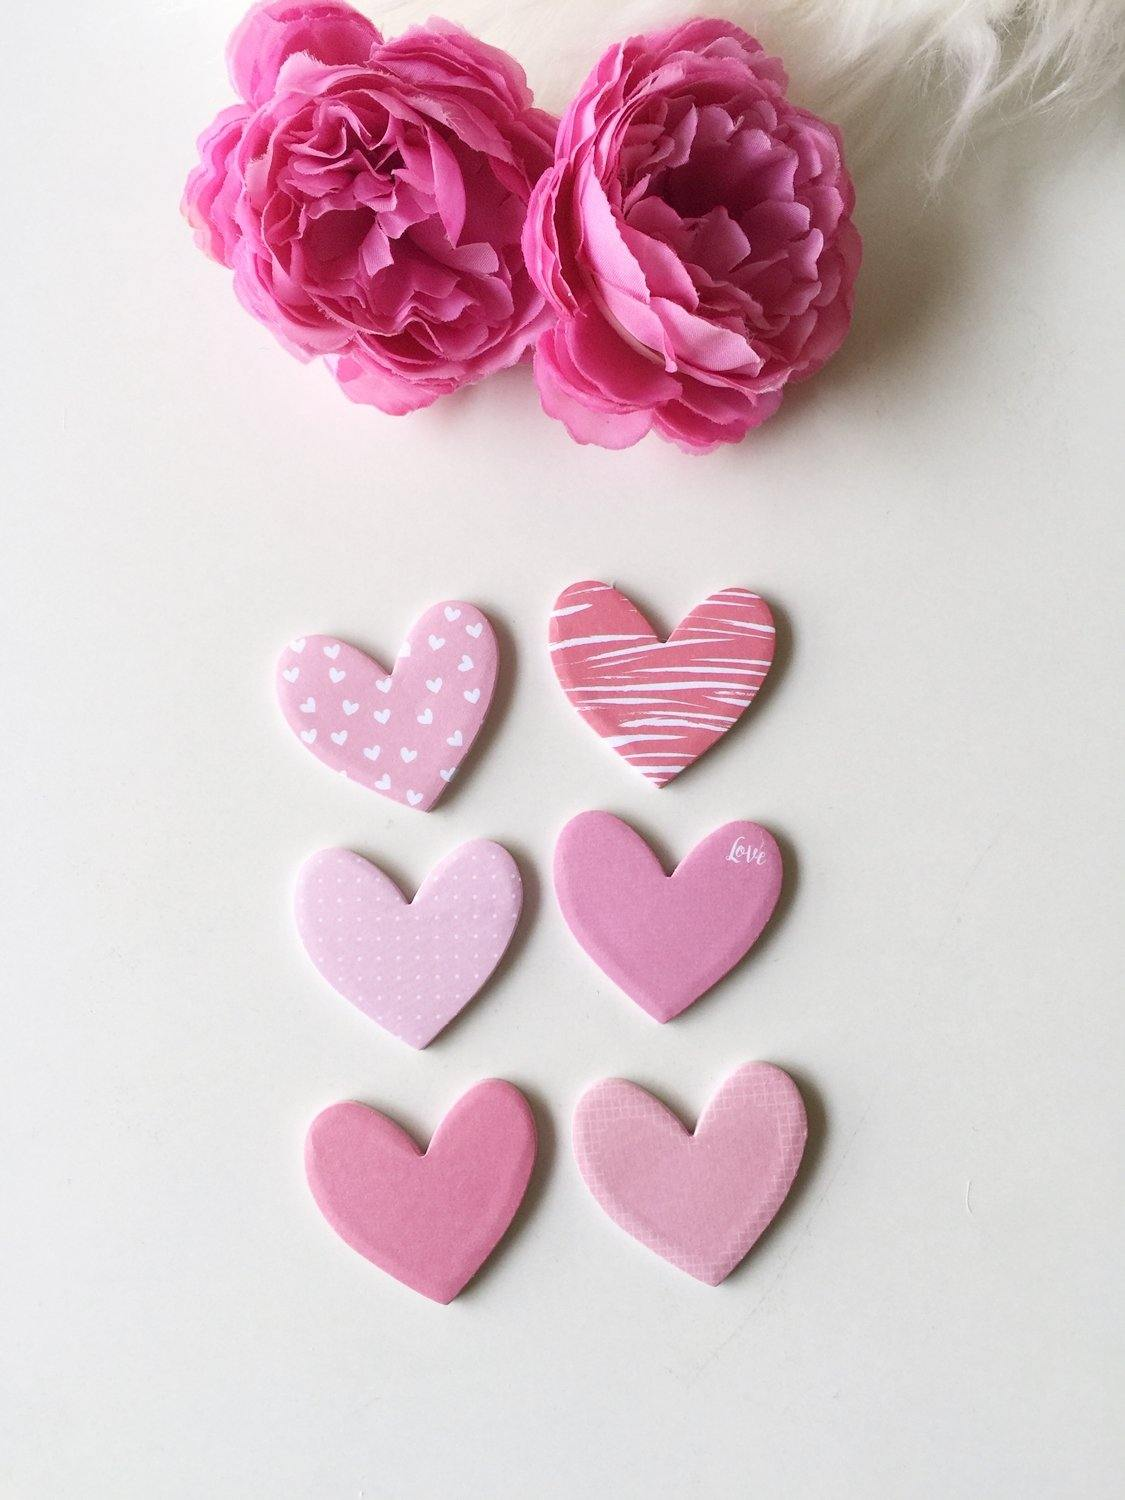 Adorable Hearts Sticky Notes | Self Adhesive | 2"